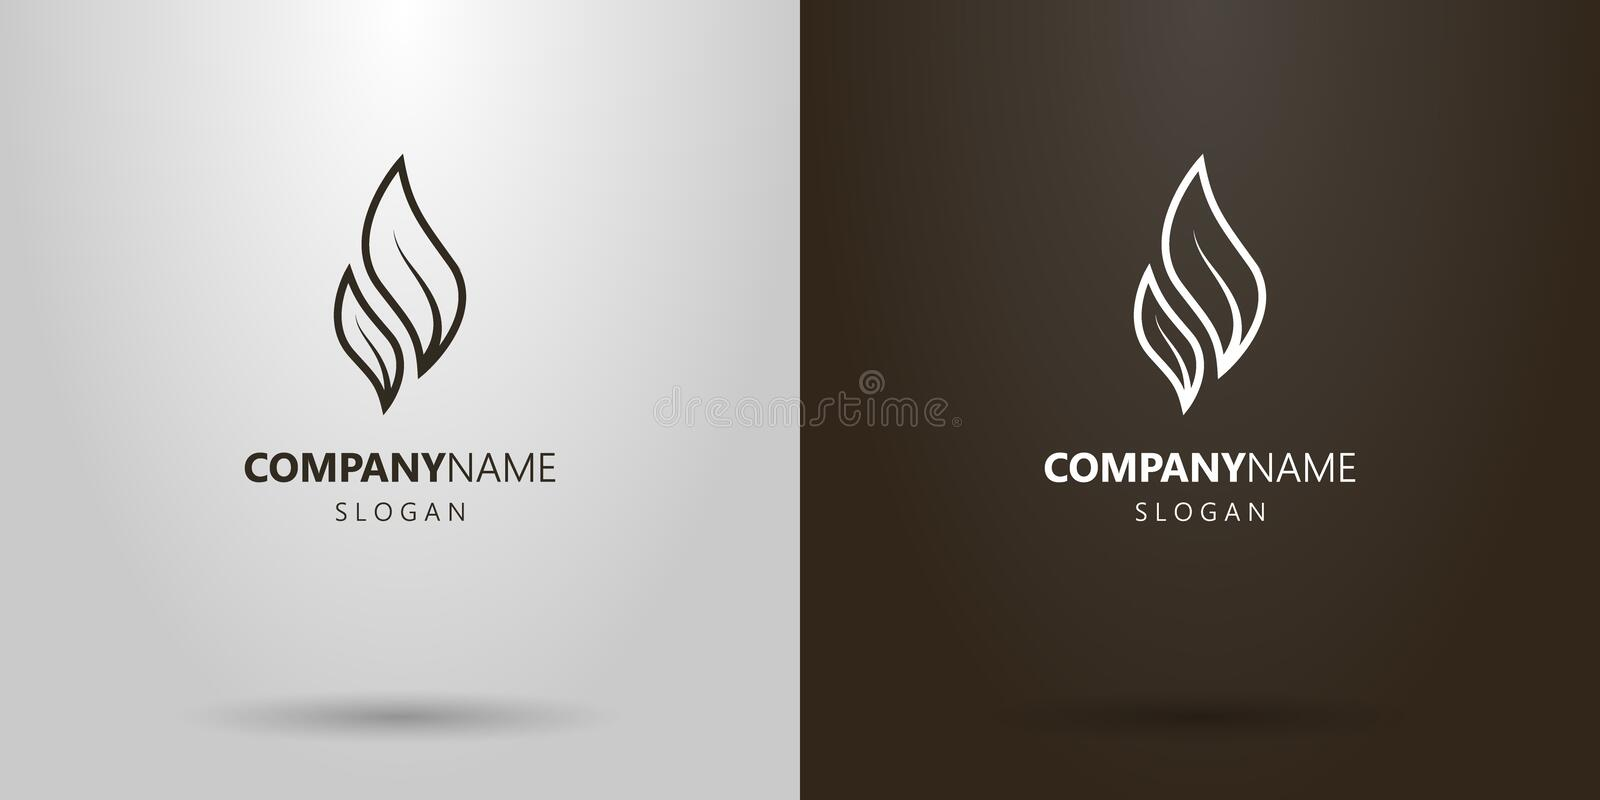 Simple vector line art logo of two tea leaves royalty free illustration